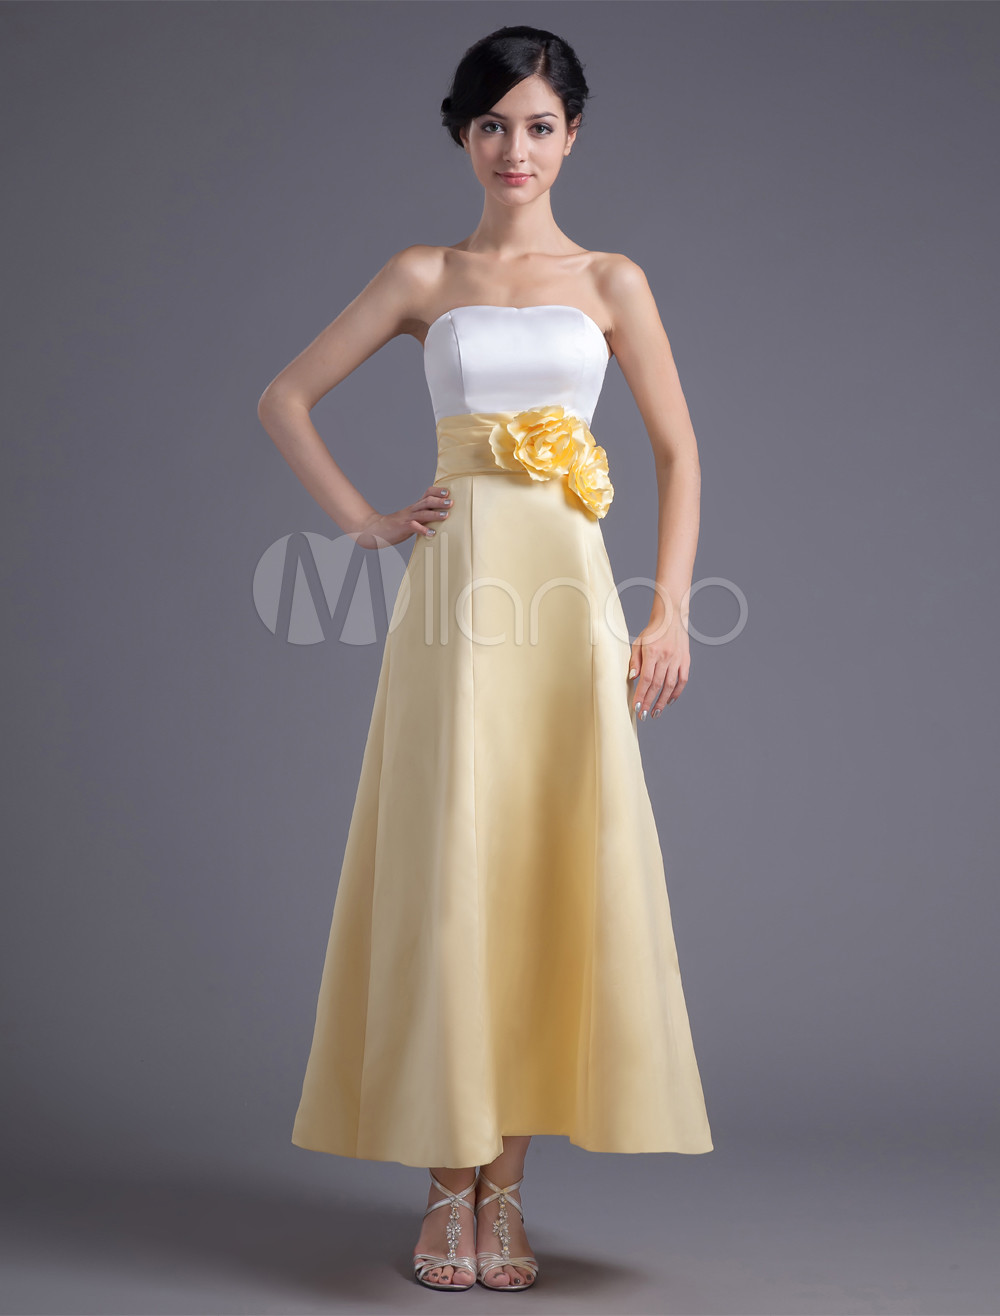 A-line Satin Floral Strapless Ankle-Length Bridesmaid Dress For Wedding